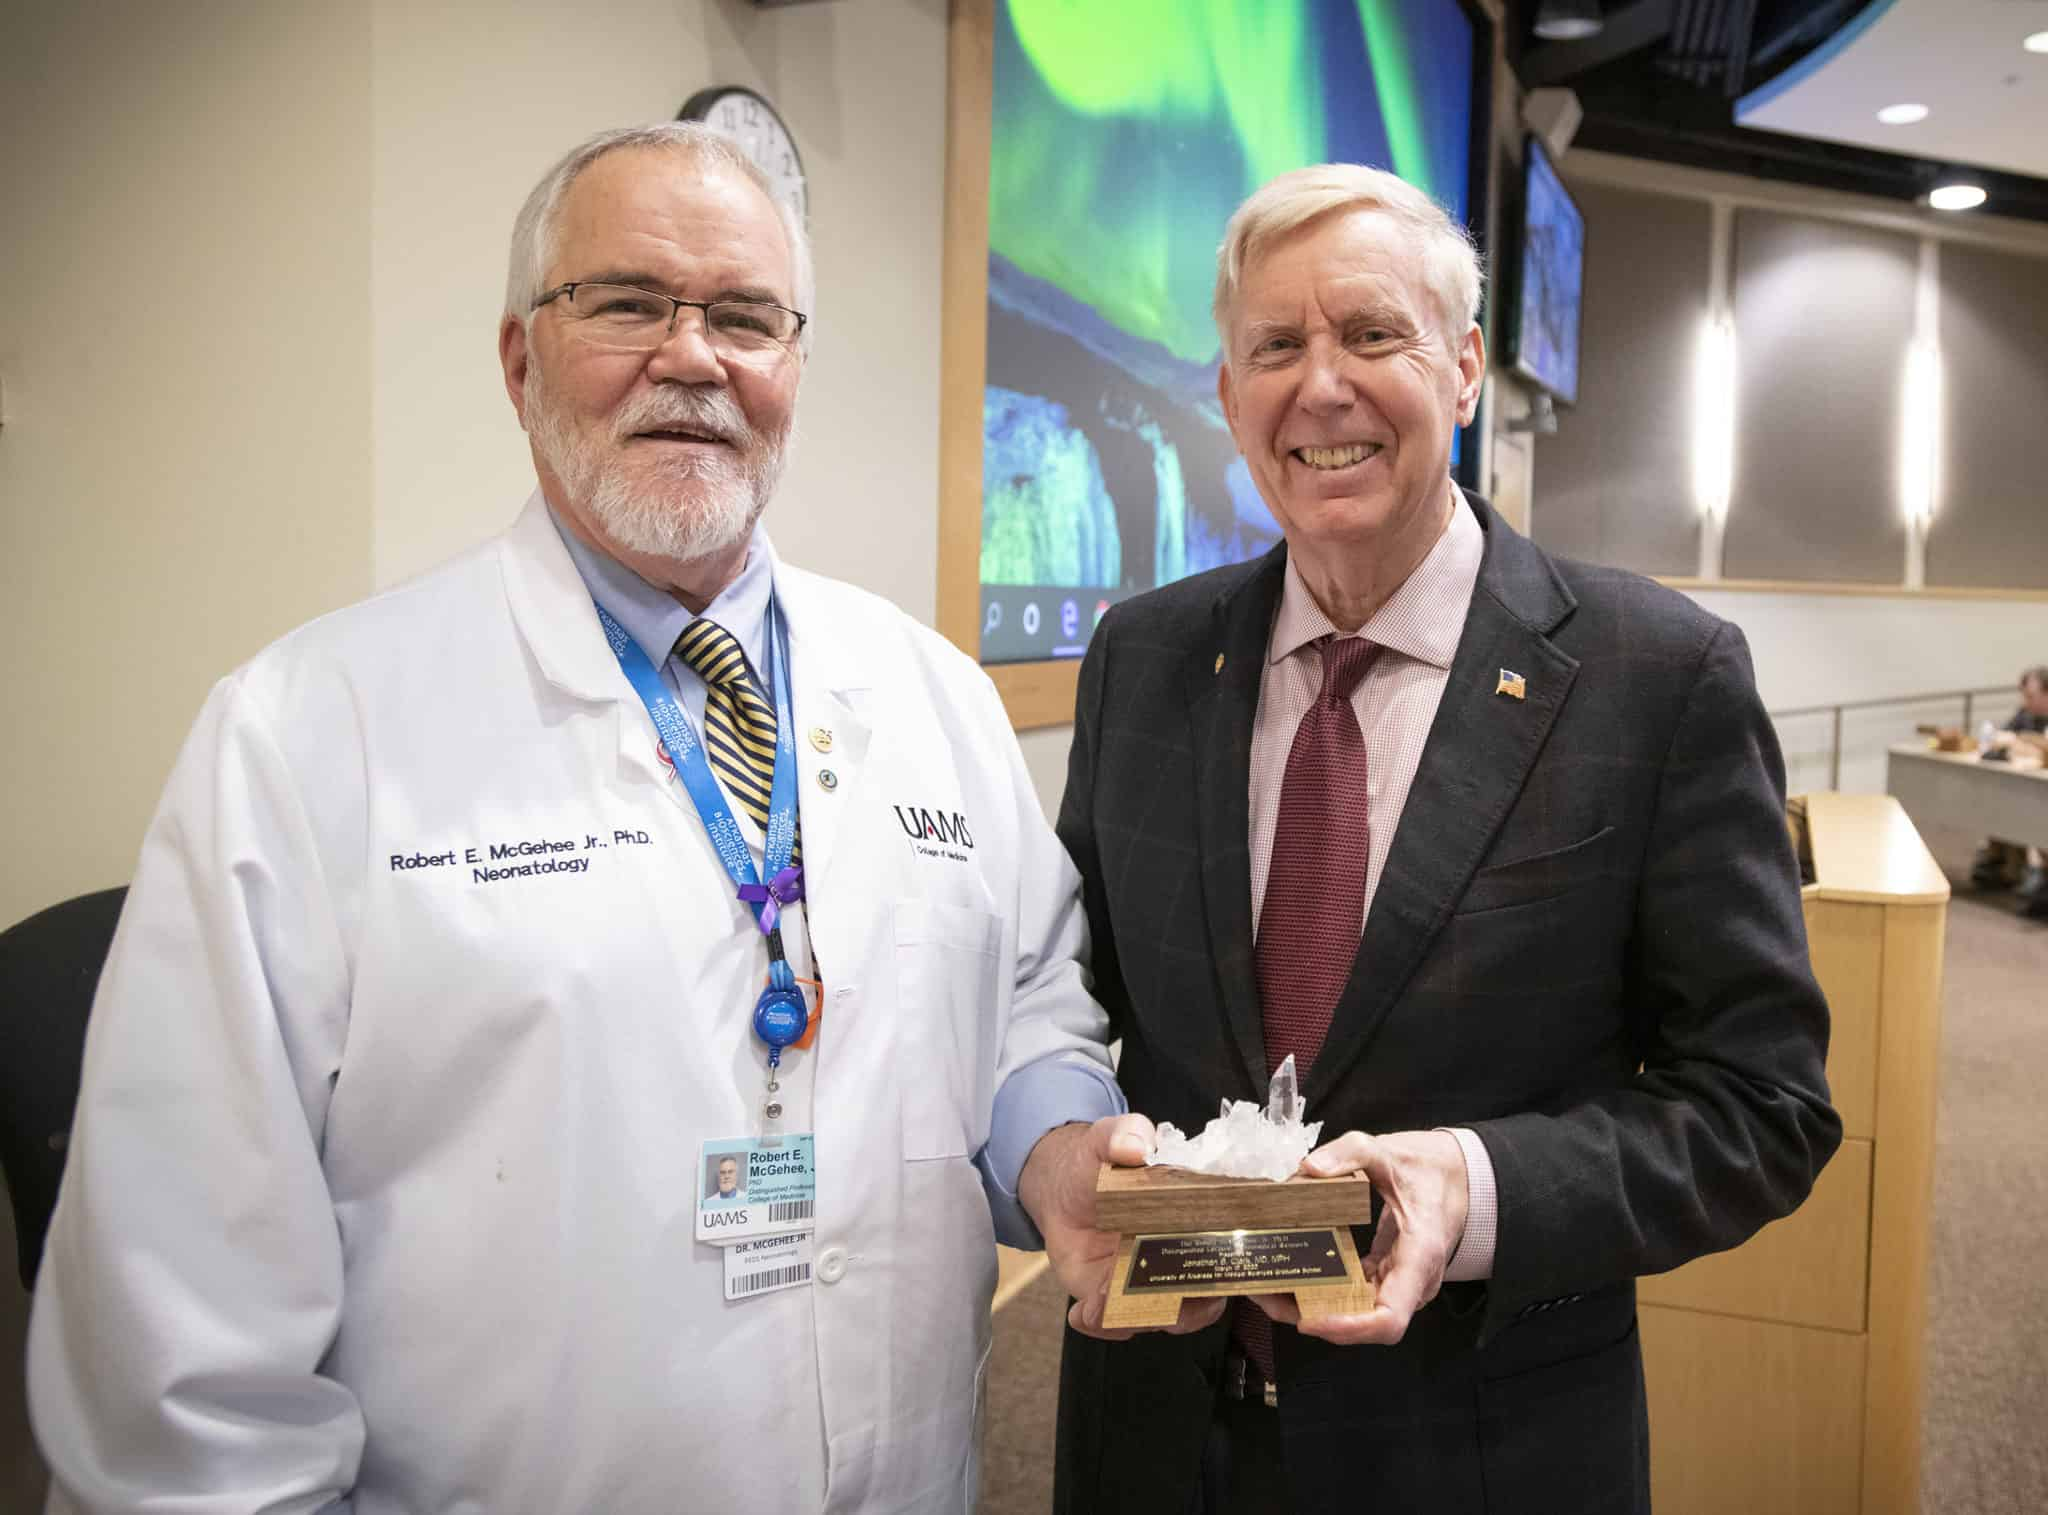 Dean McGehee with Dr. Clark and token